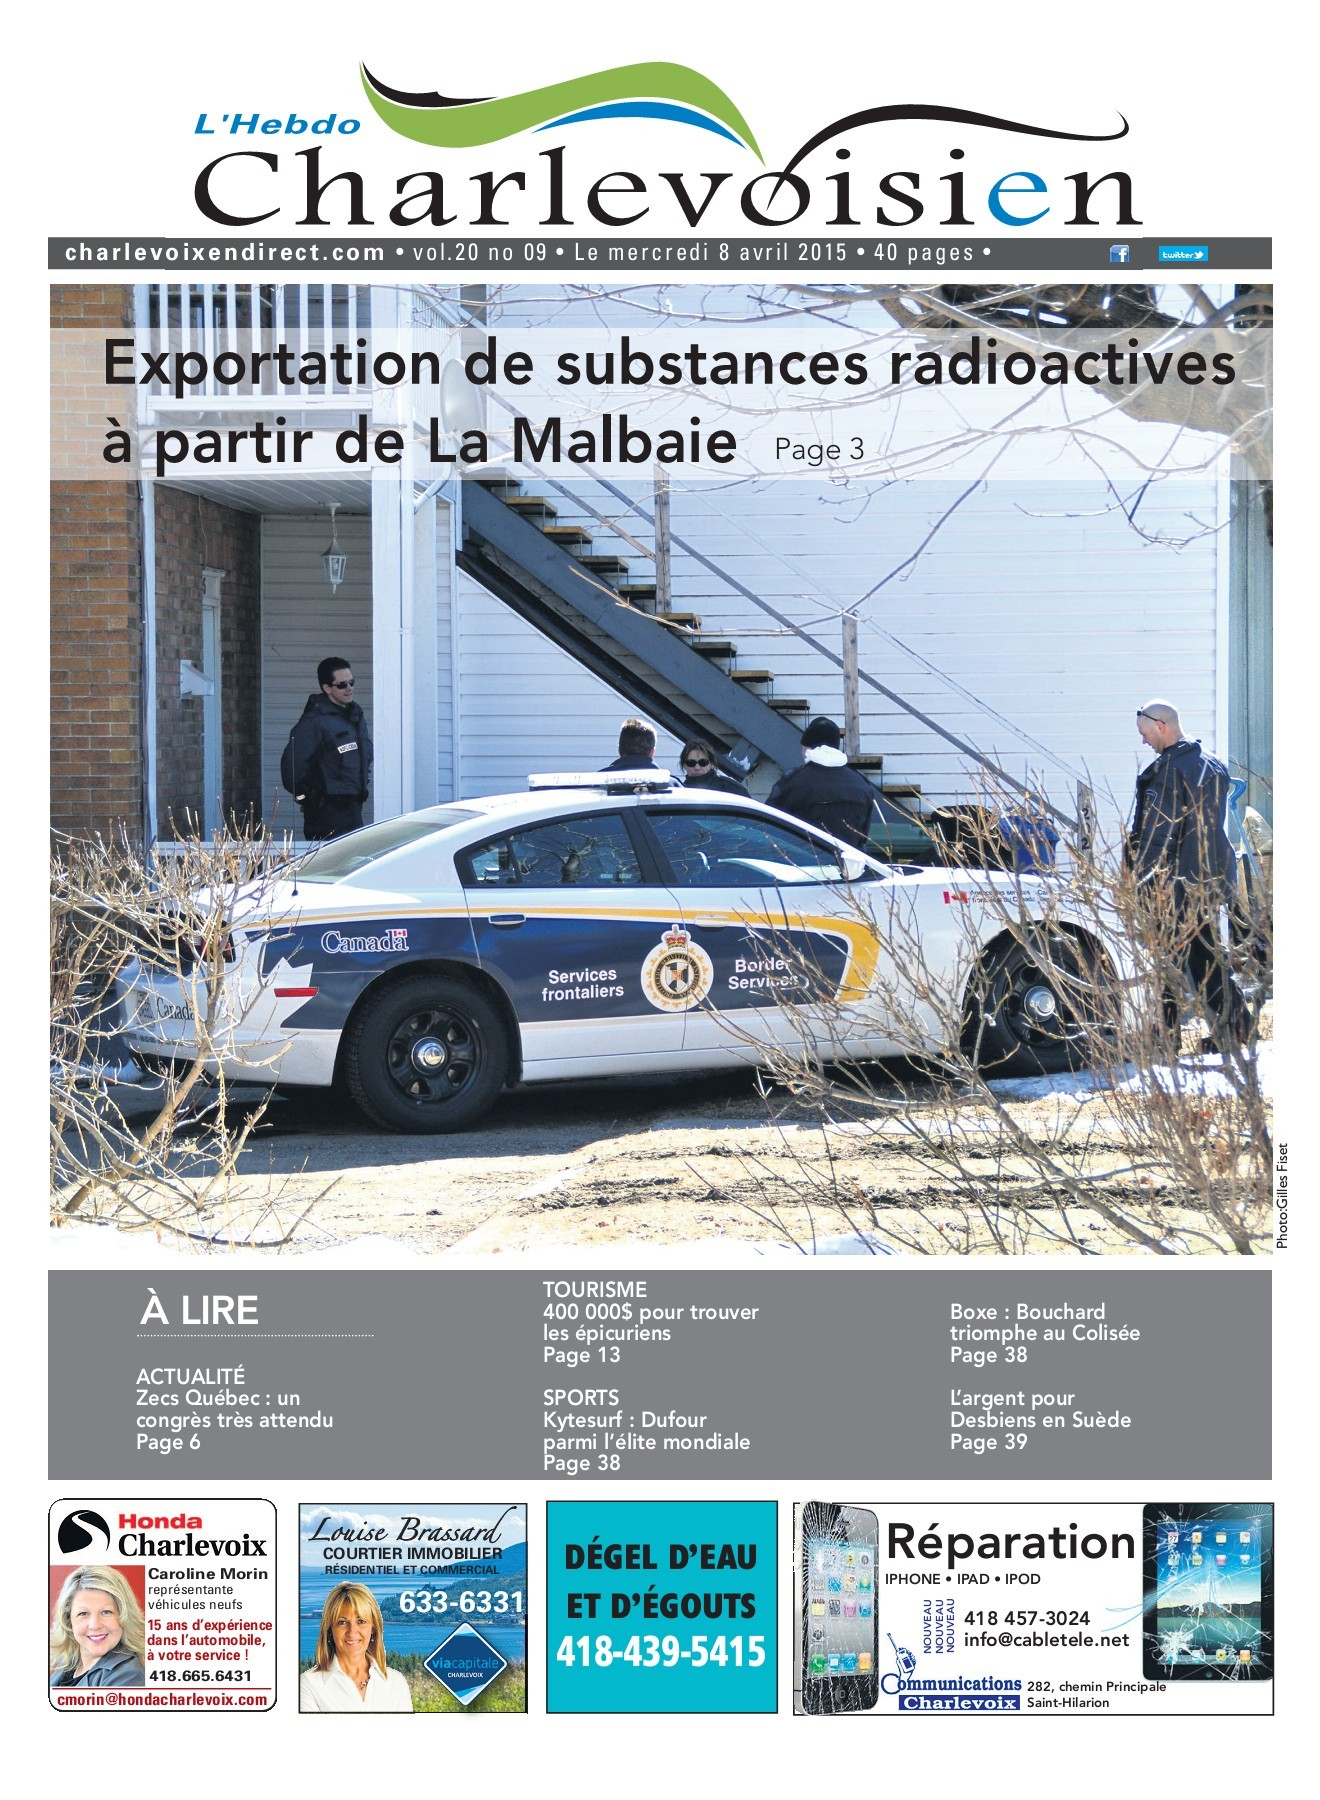 Pouf Exterieur Canadian Tire Le Charlevoisien 8 Avril 2015 Pages 1 40 Text Version